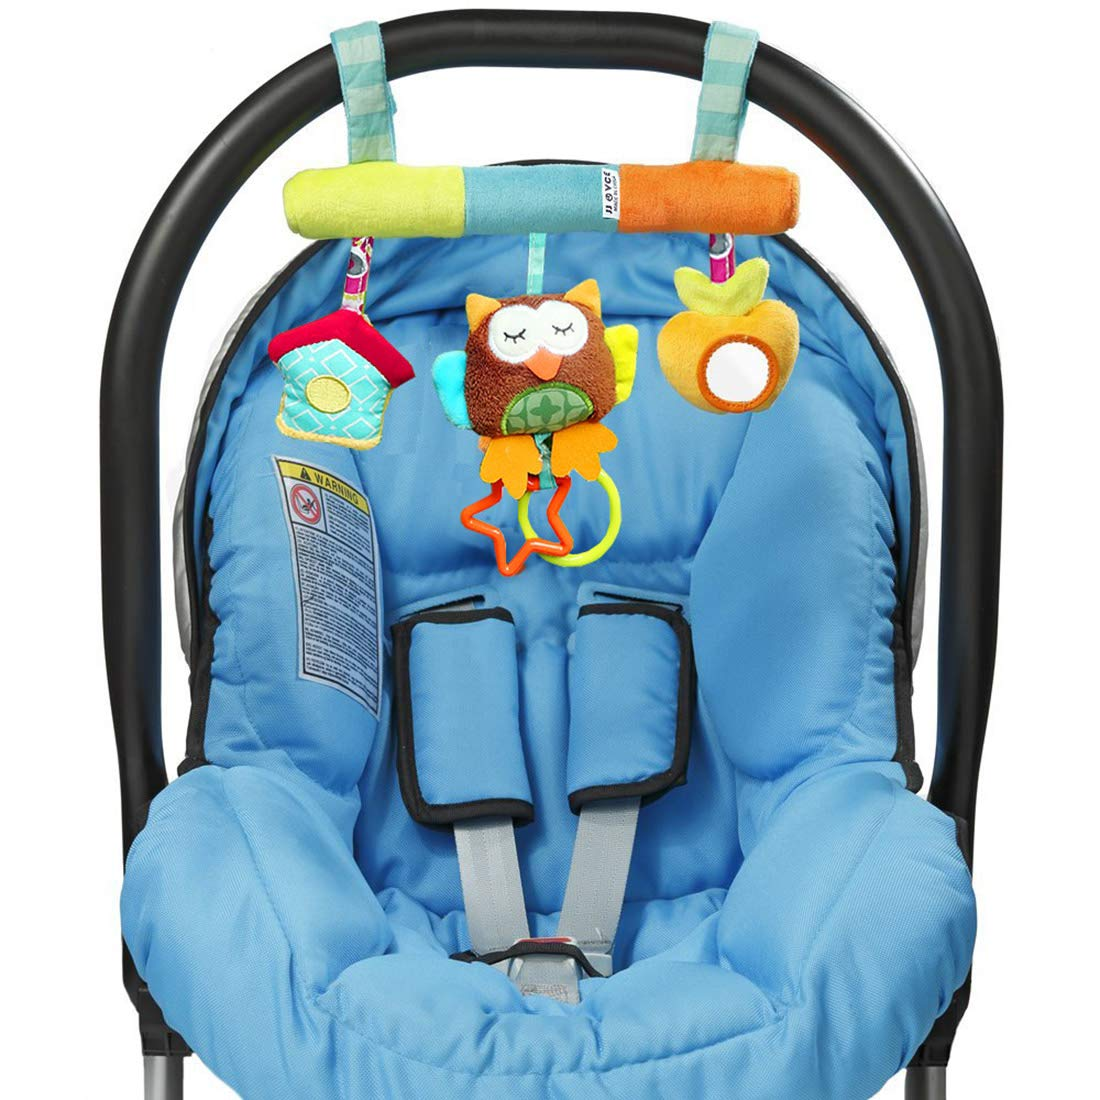 JJOVCE Infant Baby Activity Bed Hanging Toys Teether BB Rattle And Safety Mirror For Stroller Car